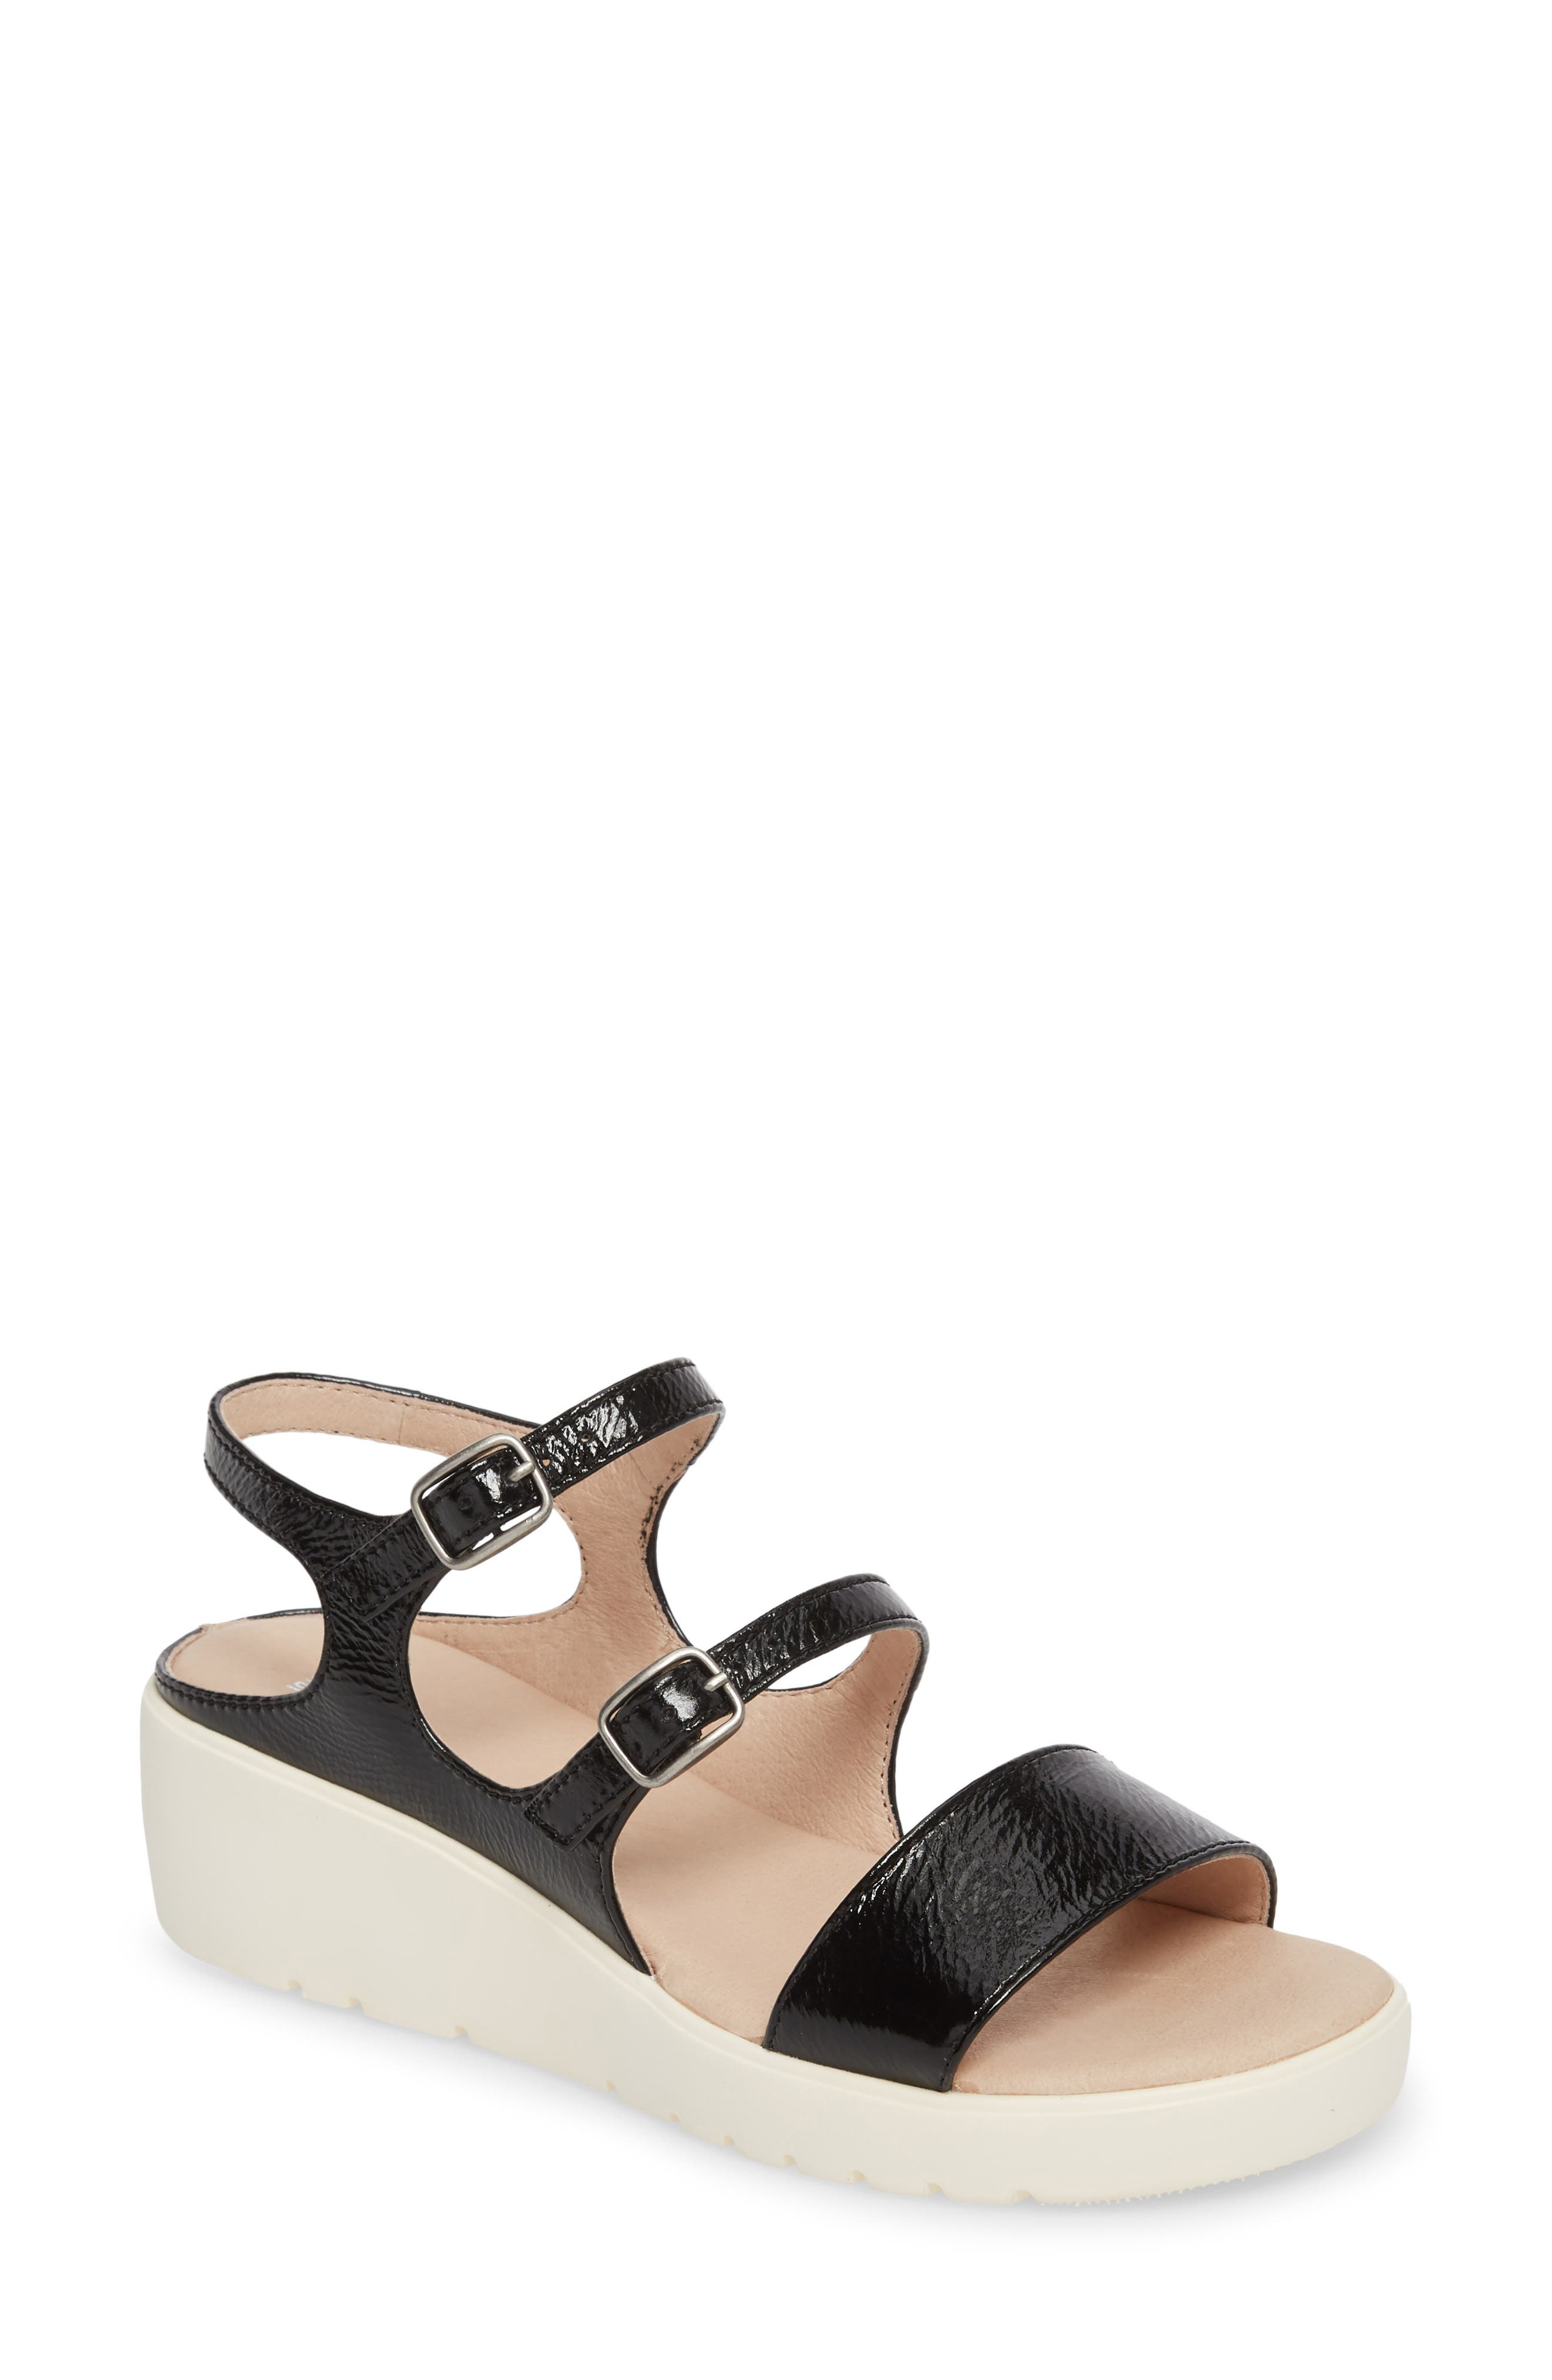 Clara Sandal,                         Main,                         color,